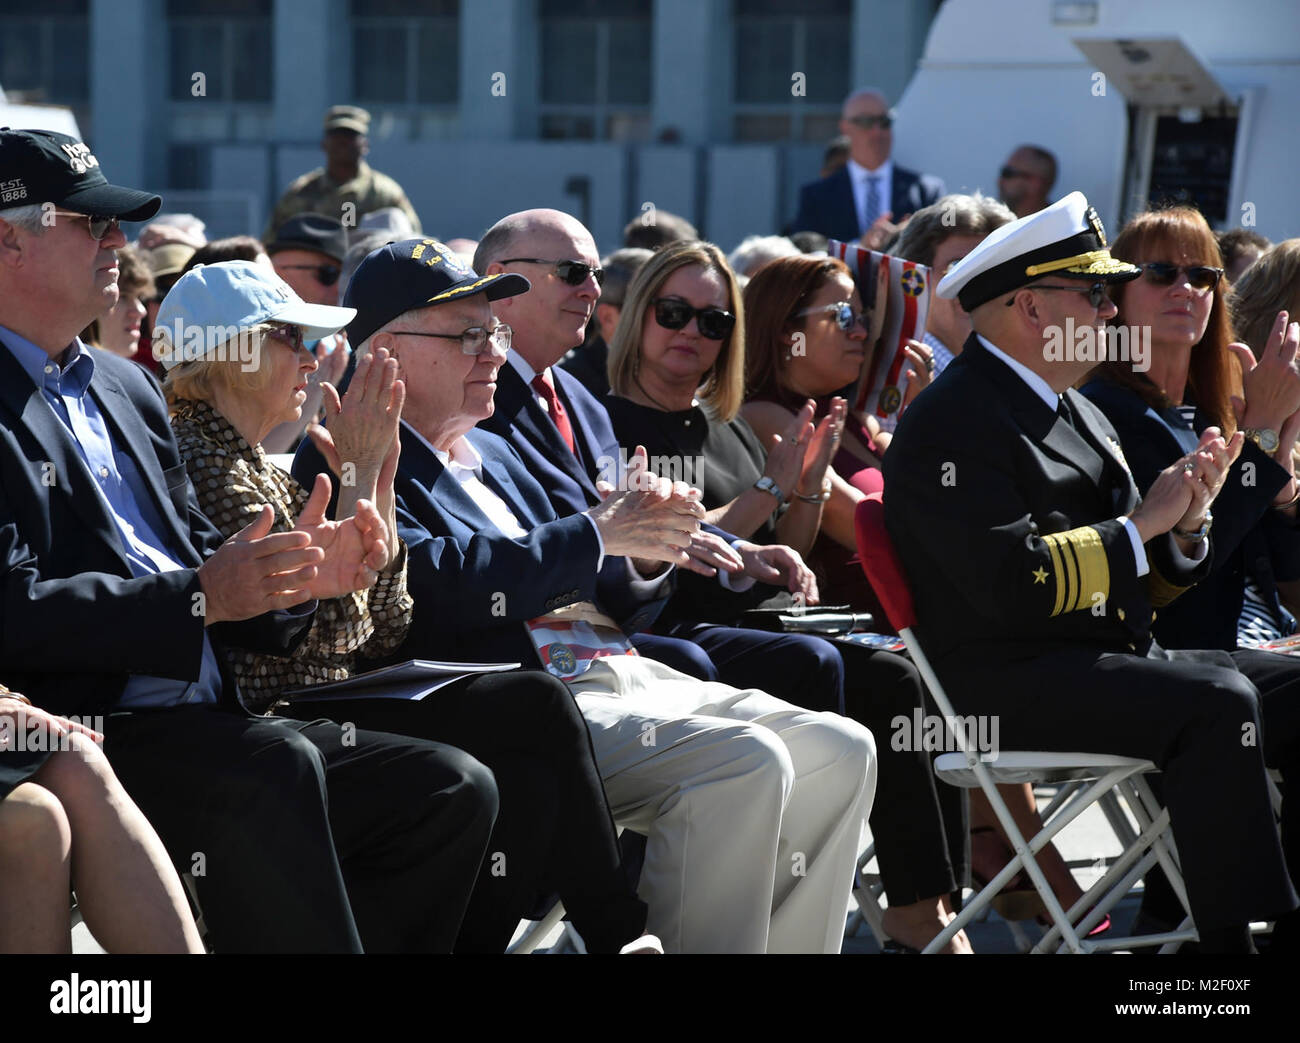 SAN DIEGO (Feb. 3, 2018) Warren Buffett, center, and his wife Astrid Menks, left of him, clap during the commissioning - Stock Image